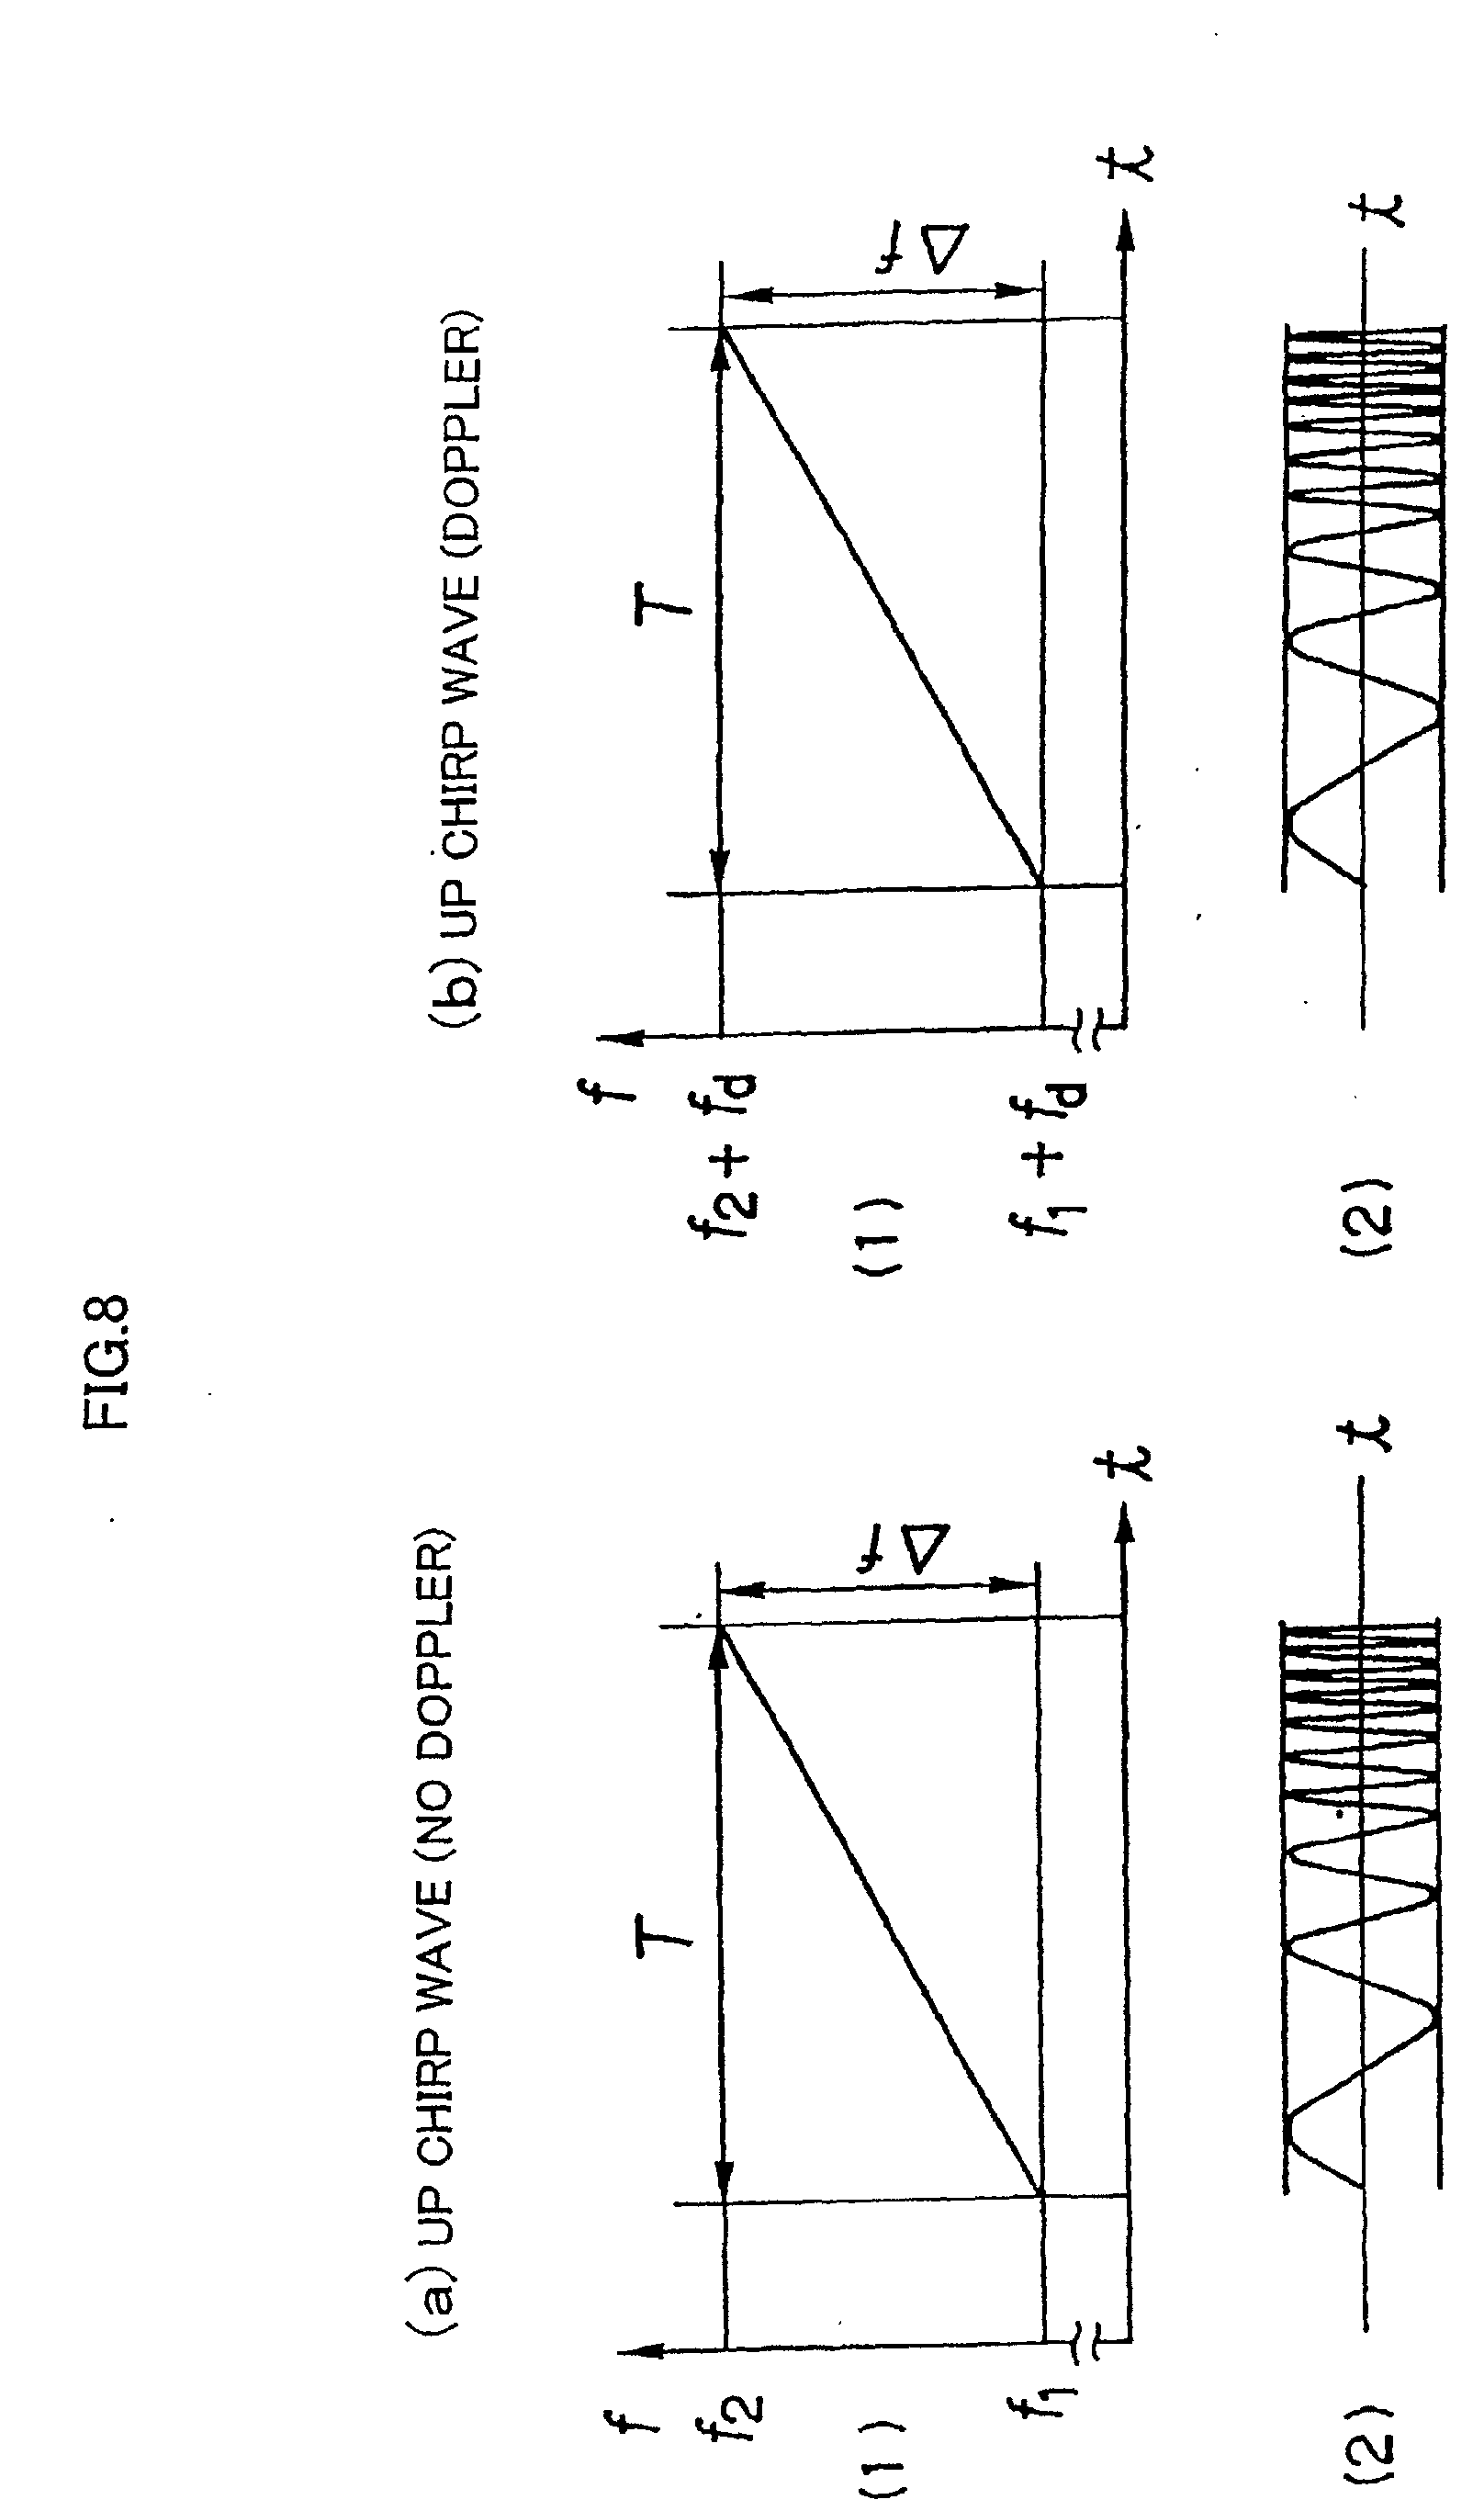 Ultrasonic Transmitter And Receiver Evointee Circuit Diagram Patent Ep1214910a1 By Pulse